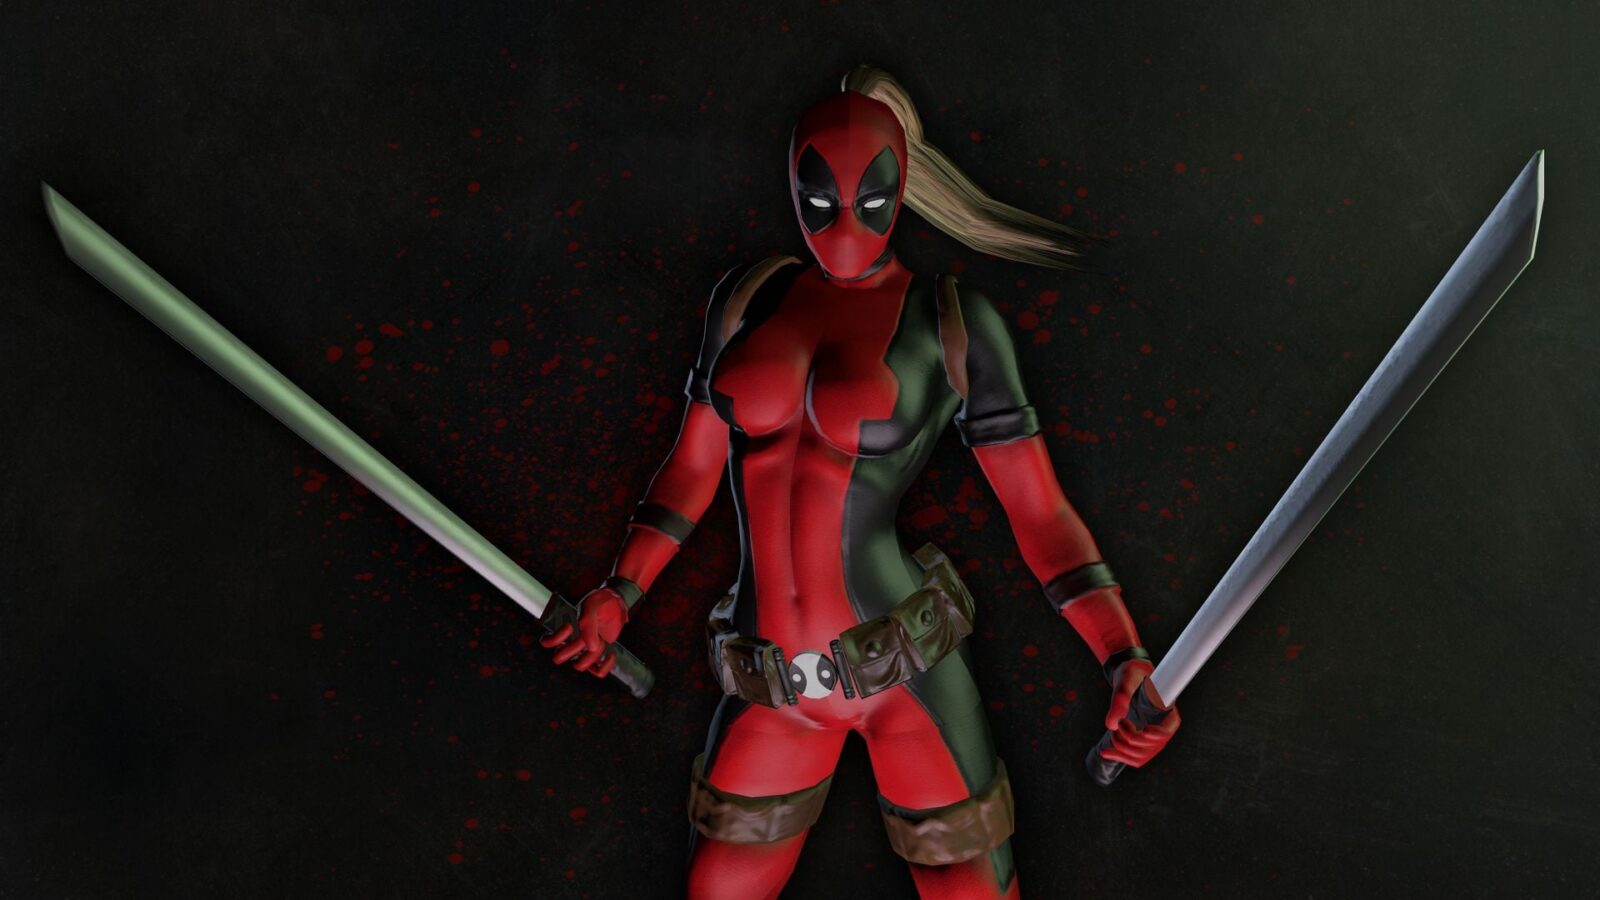 lady deadpool wallpaper 22 deadpool hd wallpapers high quality